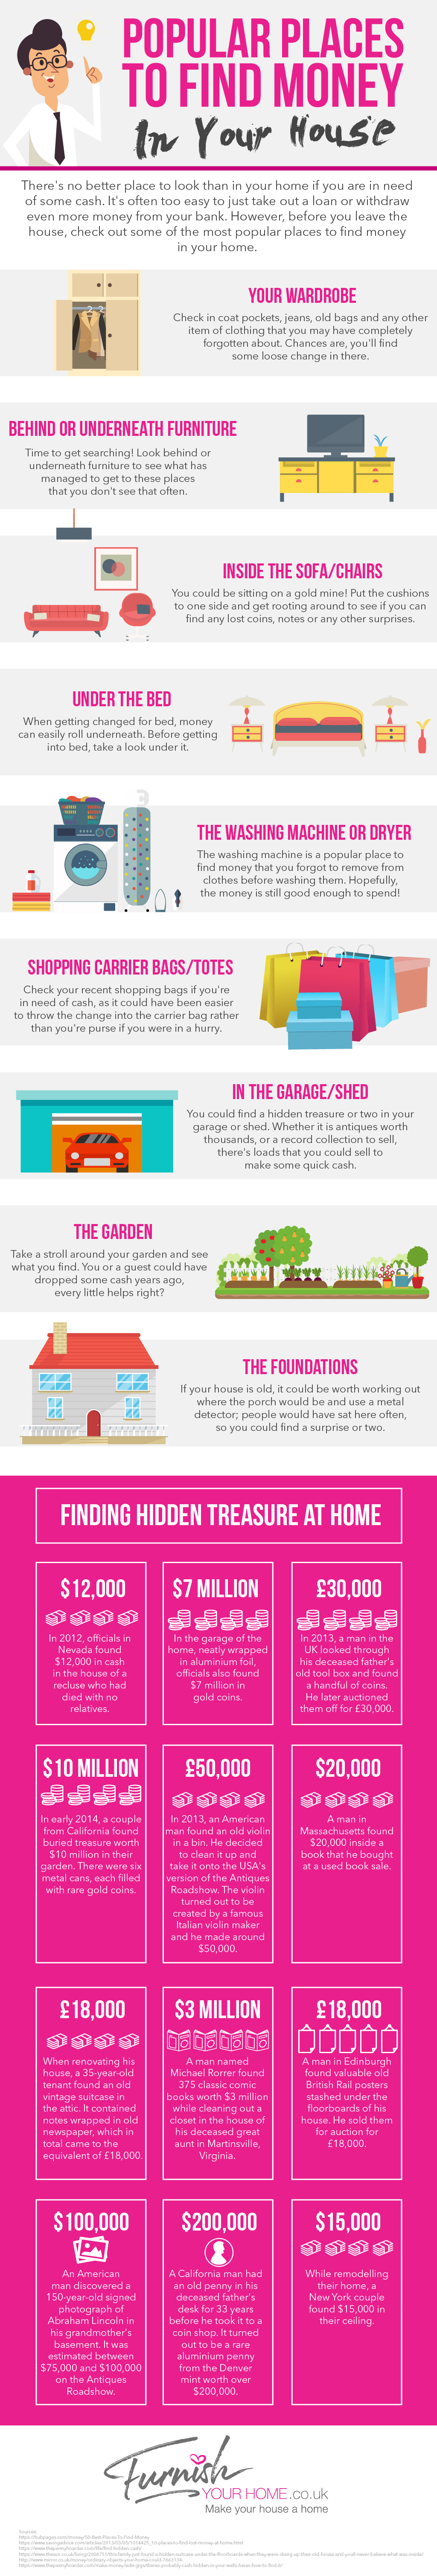 Popular Places to Find Money In Your Home